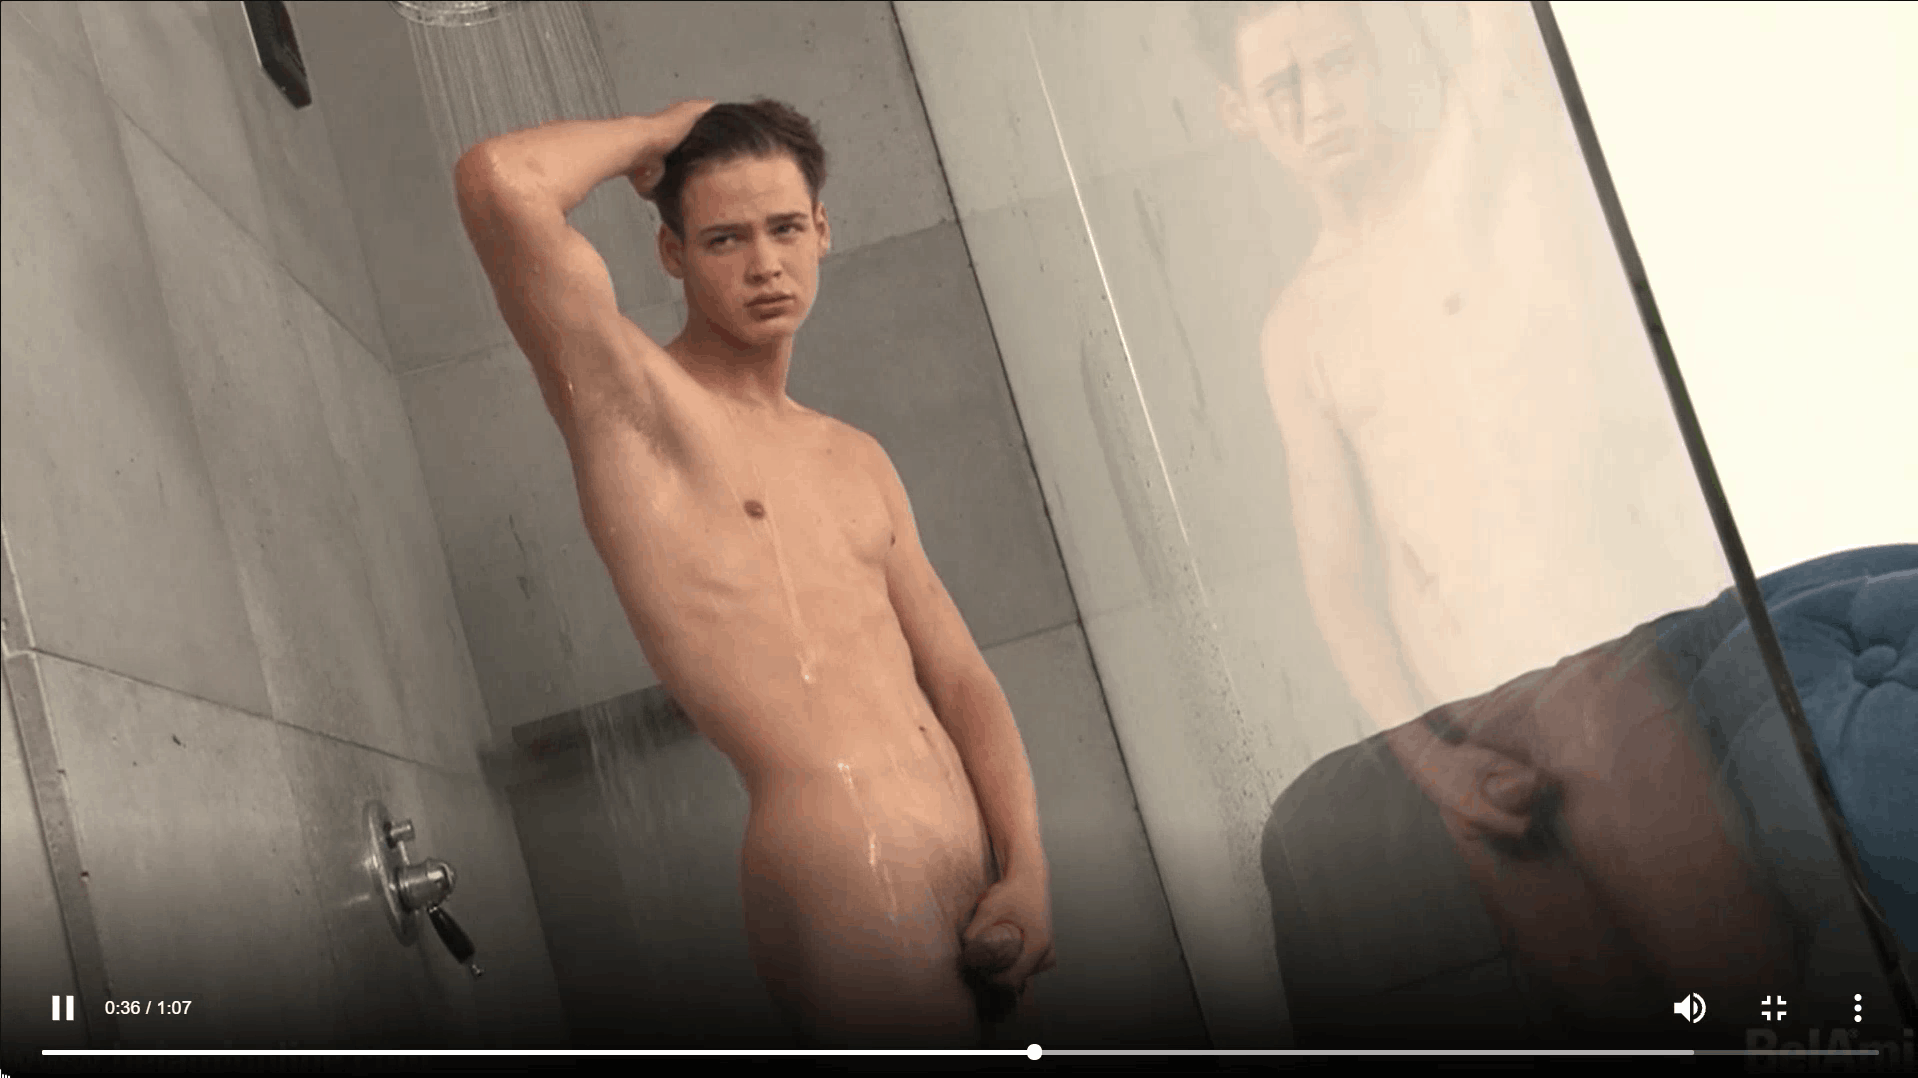 Sexy dark haired young twink Pascal Mauri steps out of the shower stroking big thick uncut dick 19 gay porn pics - Sexy dark haired young twink Pascal Mauri steps out of the shower stroking his big thick uncut dick